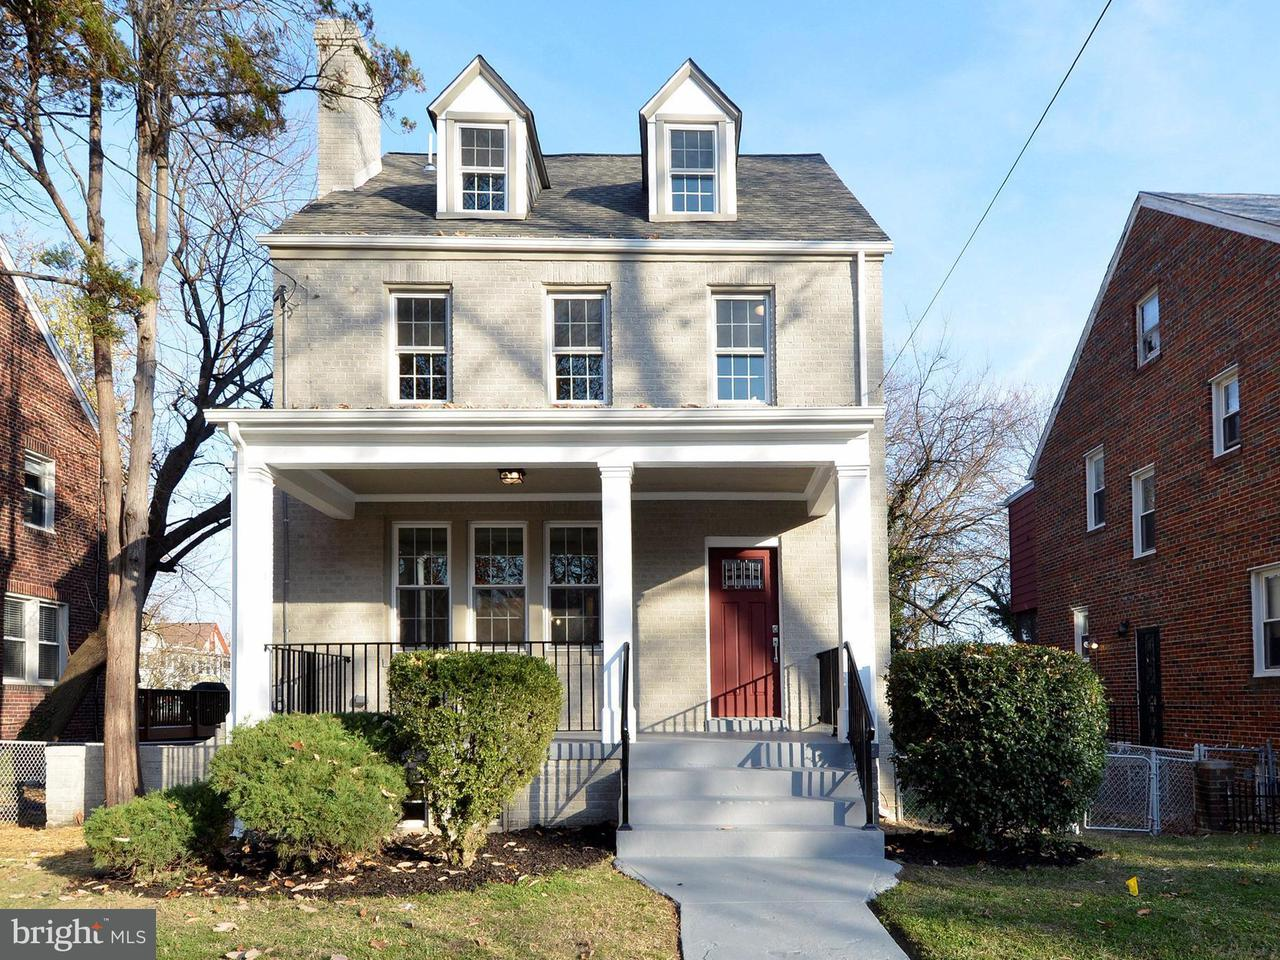 Single Family Home for Sale at 6115 5TH ST NW 6115 5TH ST NW Washington, District Of Columbia 20011 United States